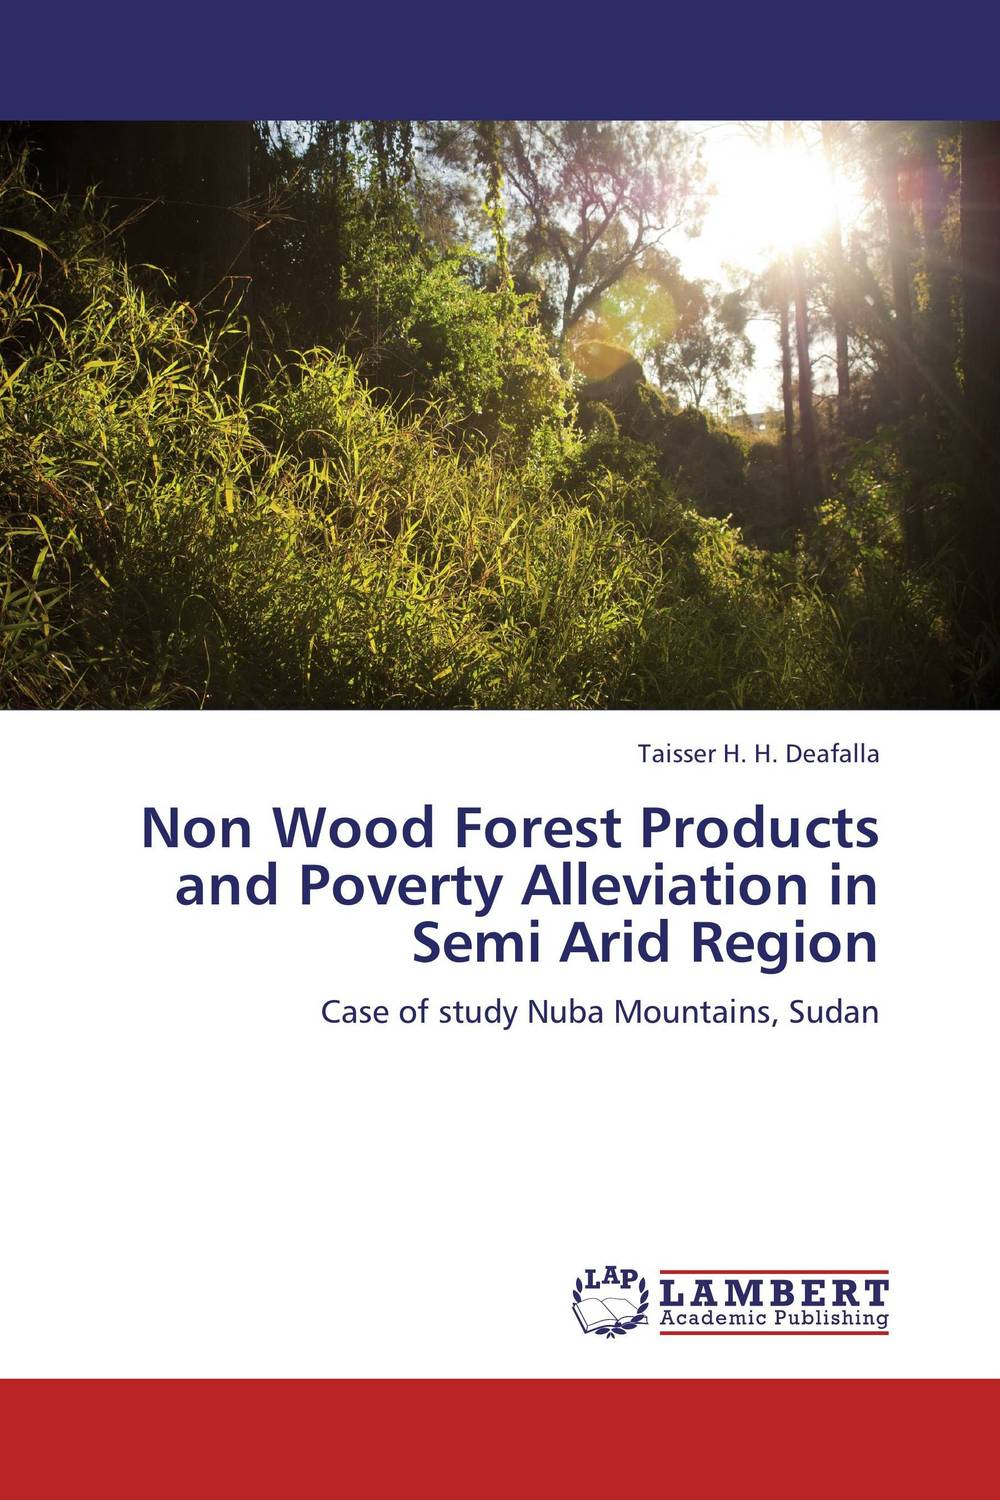 Non Wood Forest Products and Poverty Alleviation   in Semi Arid Region local government budgeting and poverty alleviation in rwanda